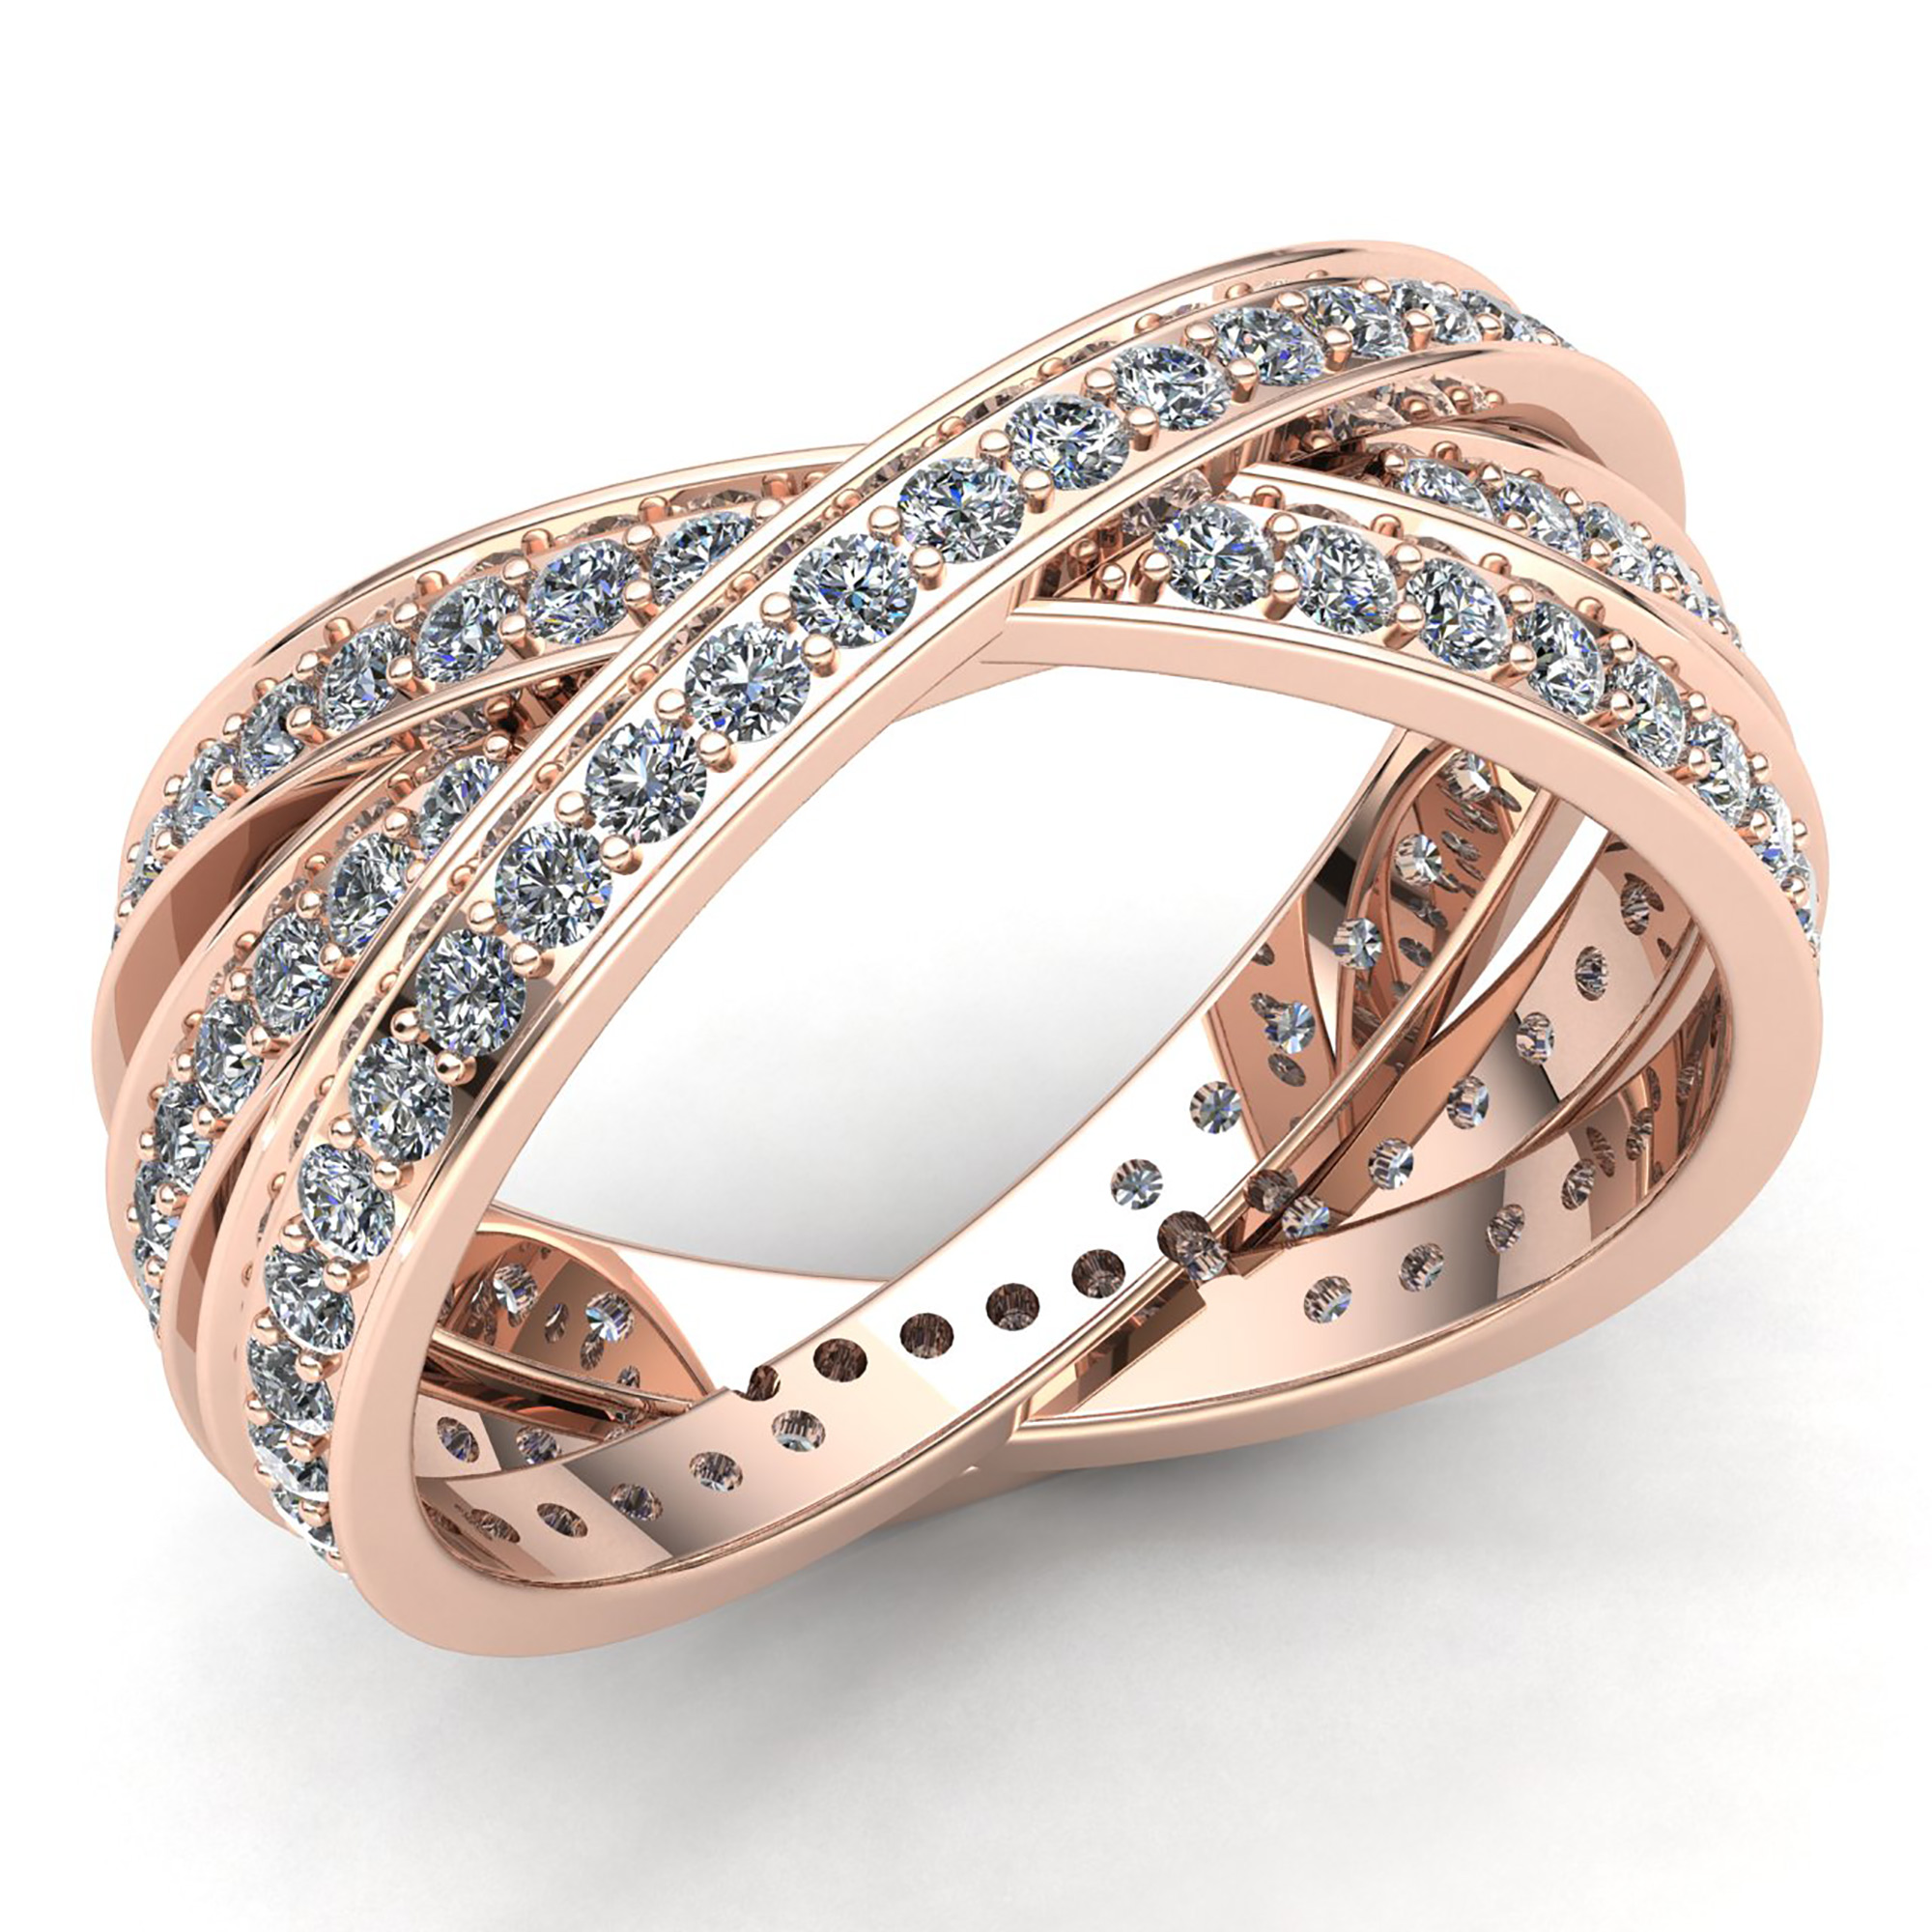 bands band dia b wavy jewel jewelry rings bridal wedding we jewelwesell round yg prod diamond fancy cut personalized a genuine ladies net gold anniversary src sell rose sears